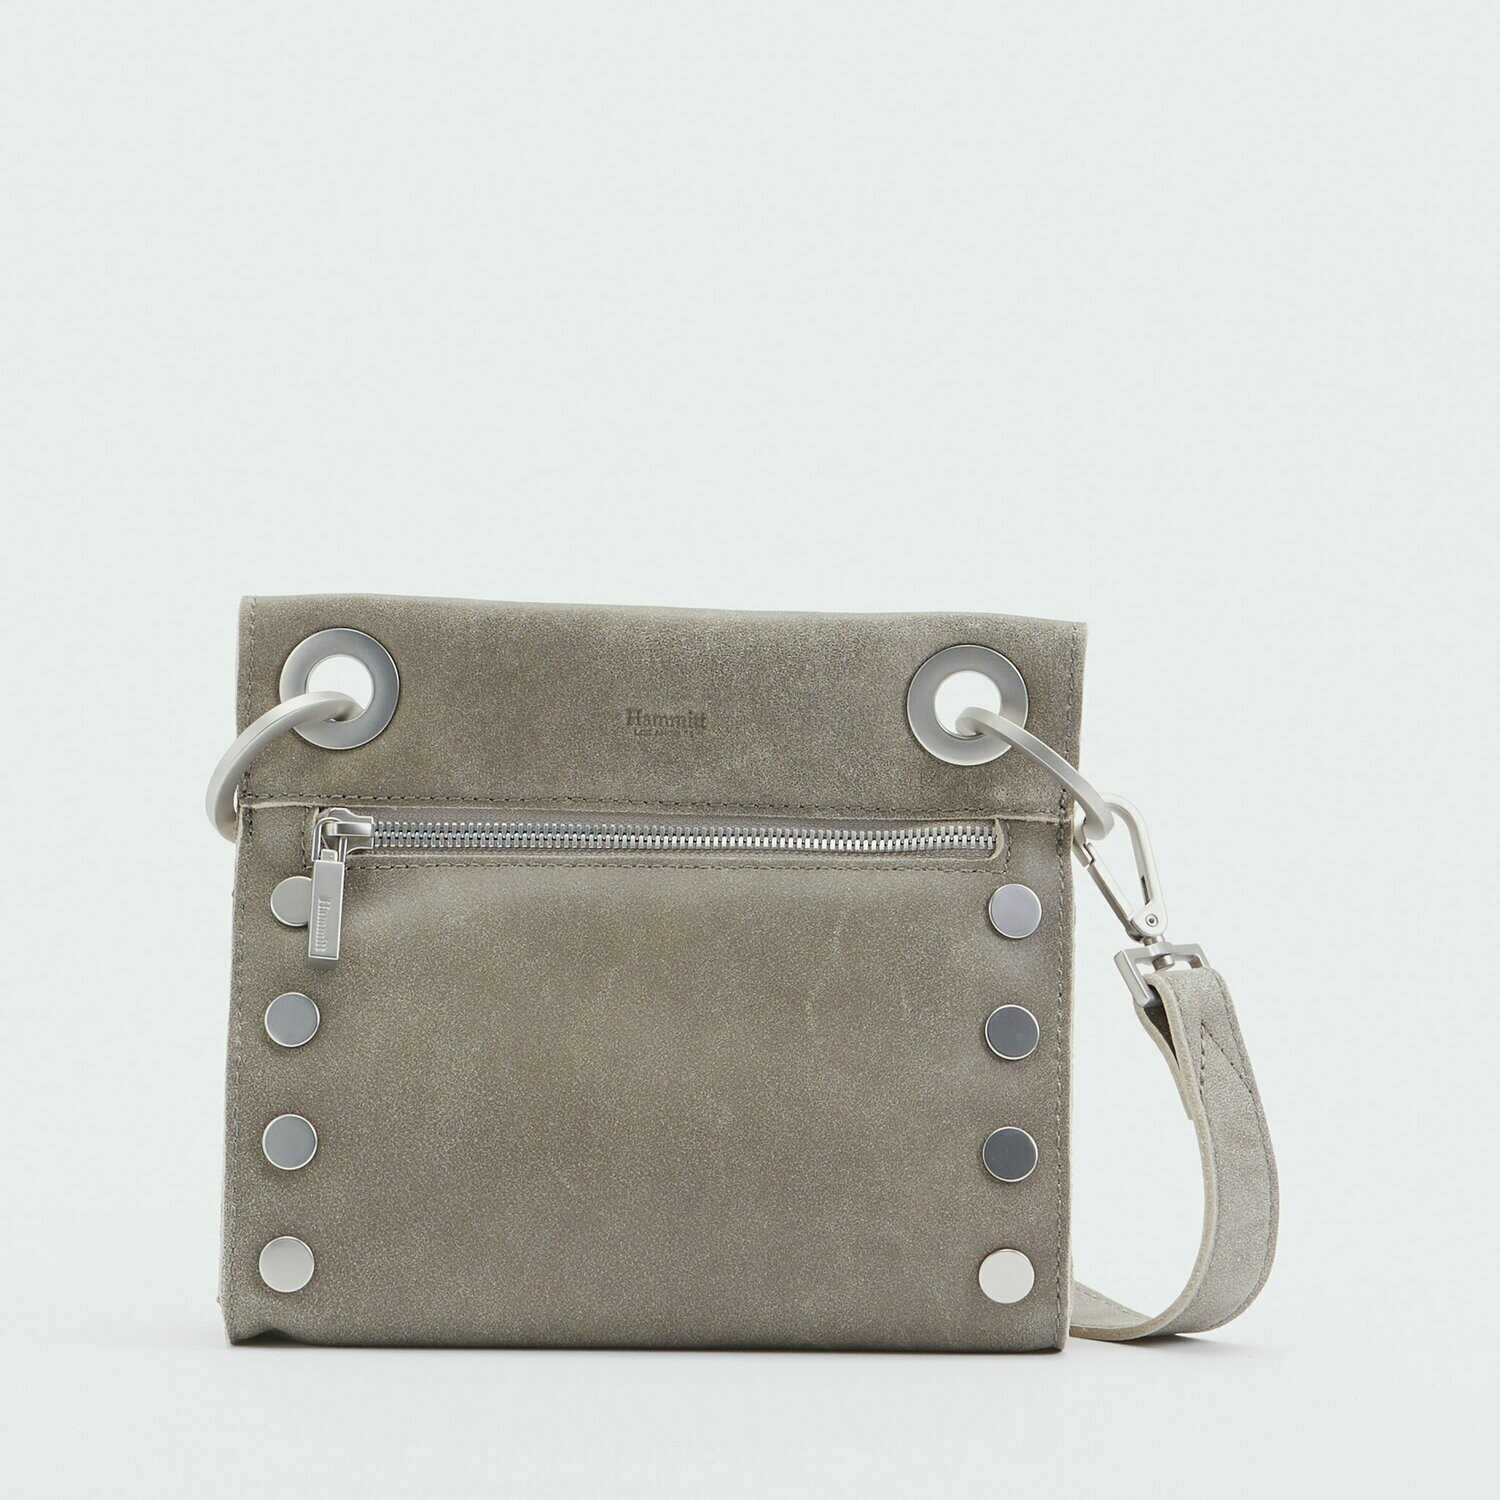 Tony Small Pewter with Brushed Silver Hardware